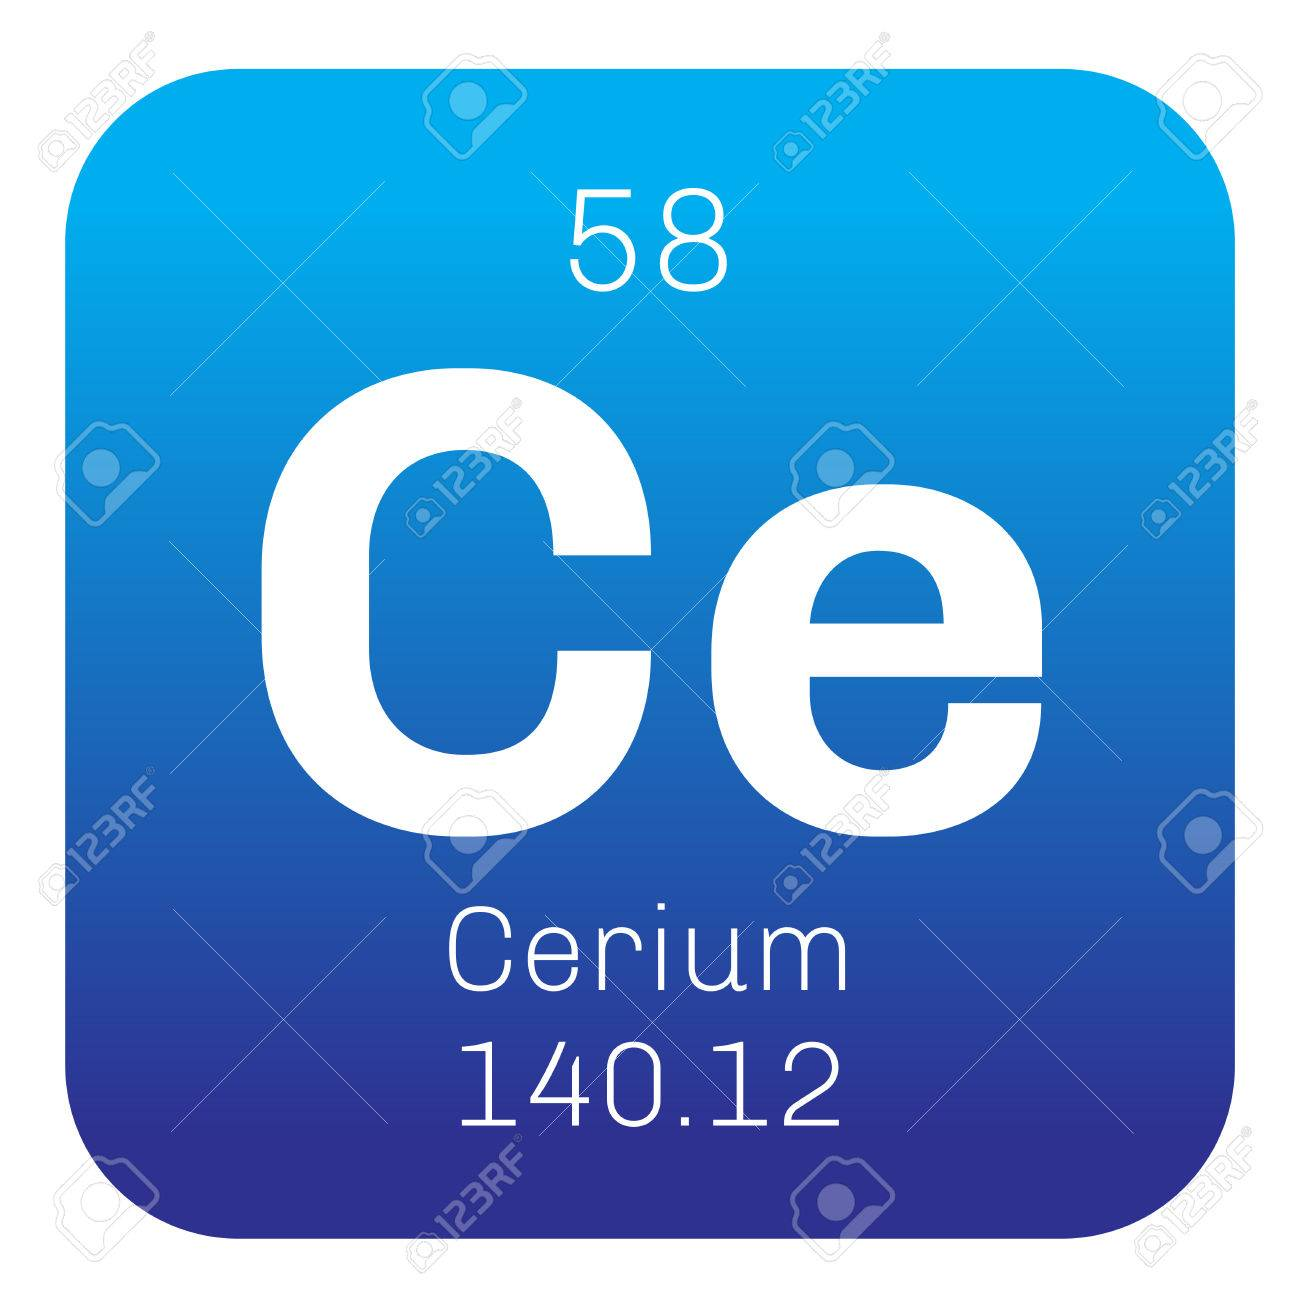 Cerium chemical element most common of the lanthanides colored chemical element of periodic table cerium chemical element most common of the lanthanides colored icon with atomic number and urtaz Image collections